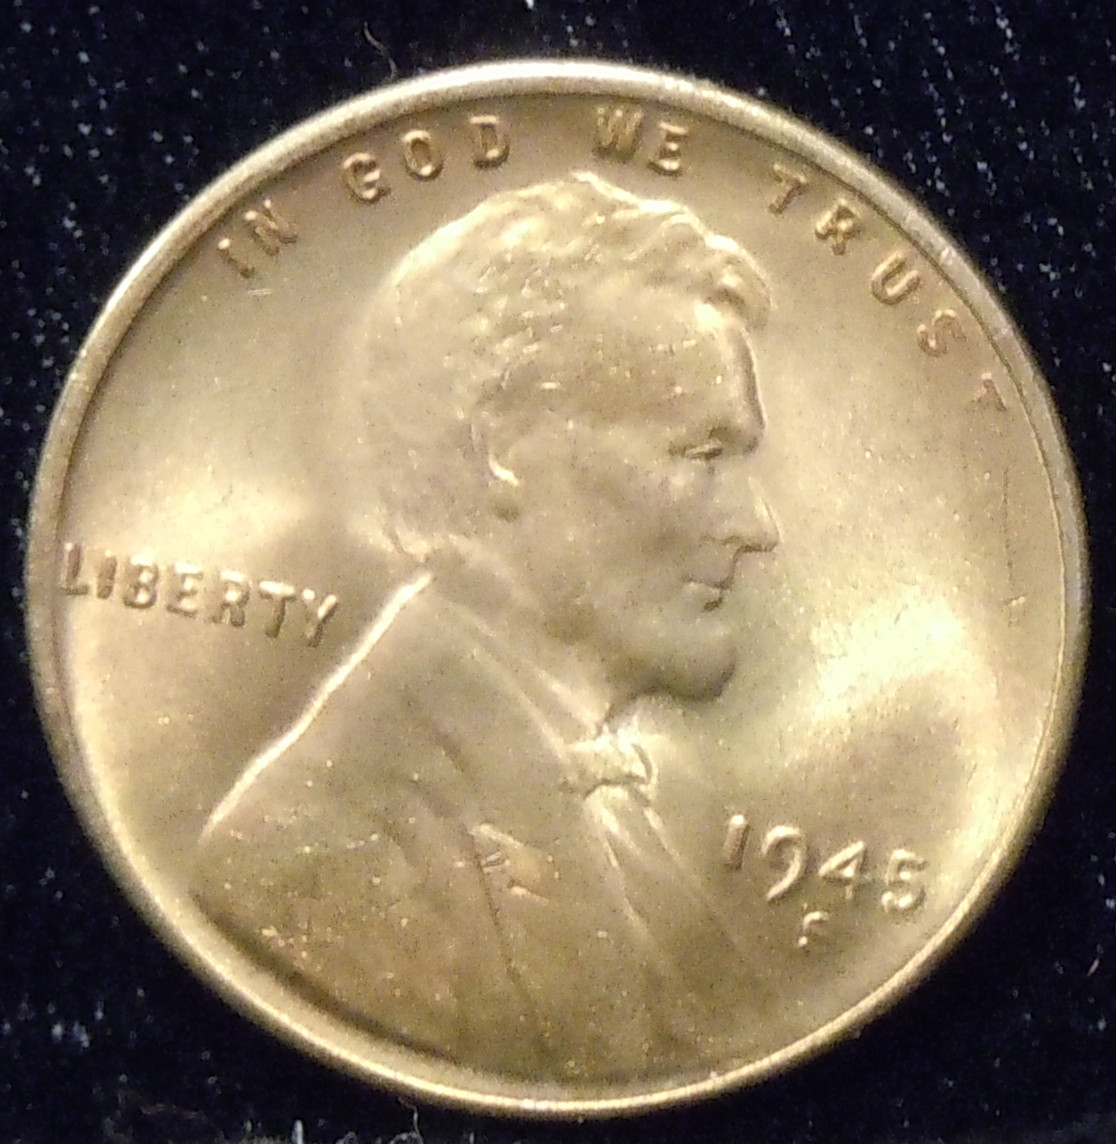 1945-S Lincoln Cent ( BU )